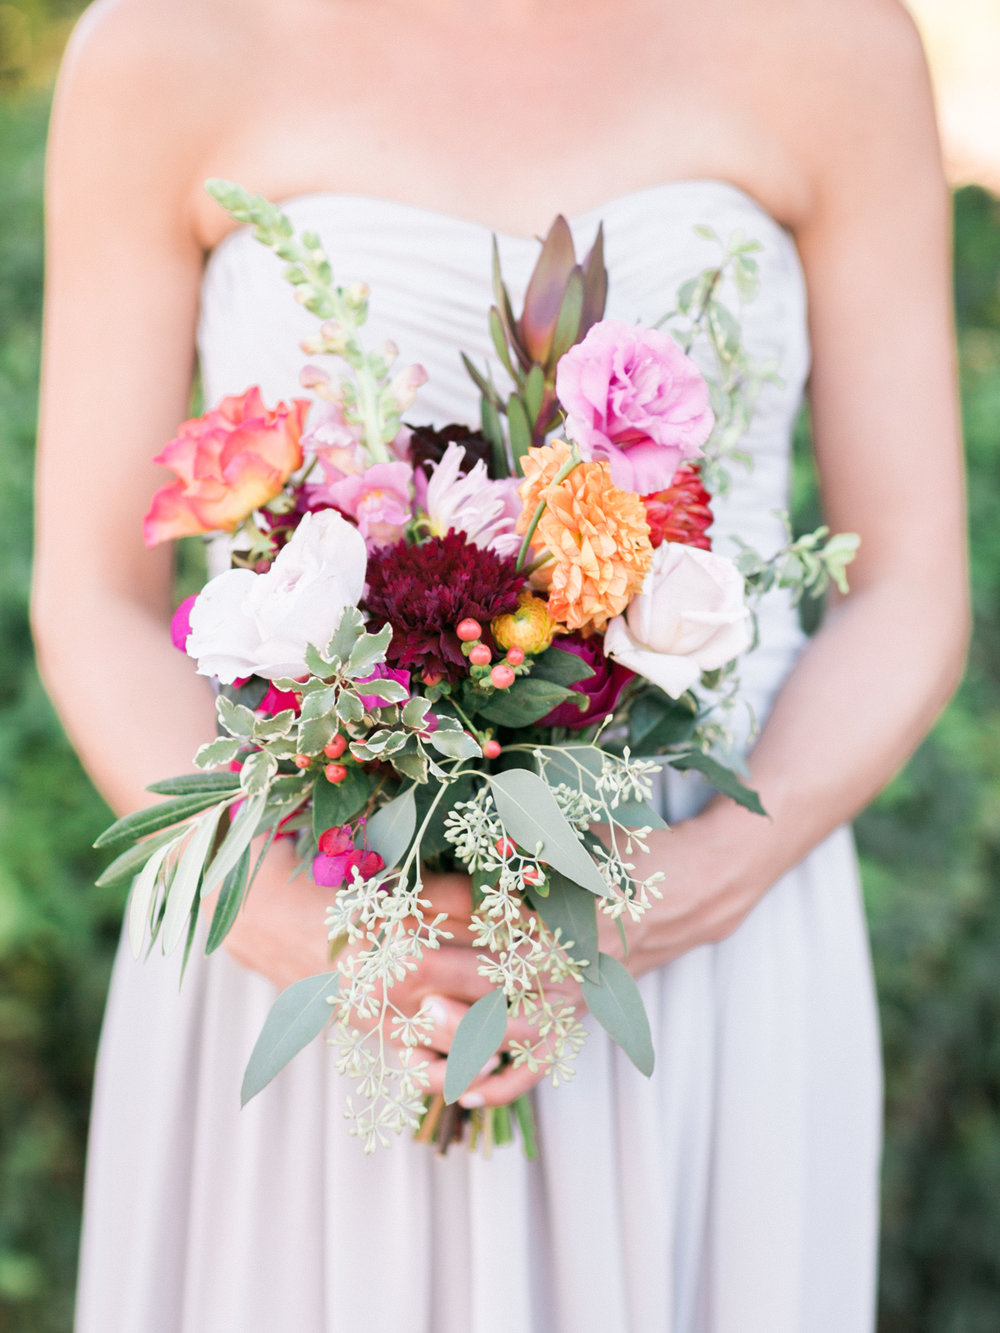 Beautiful DIY bridesmaids bouquet